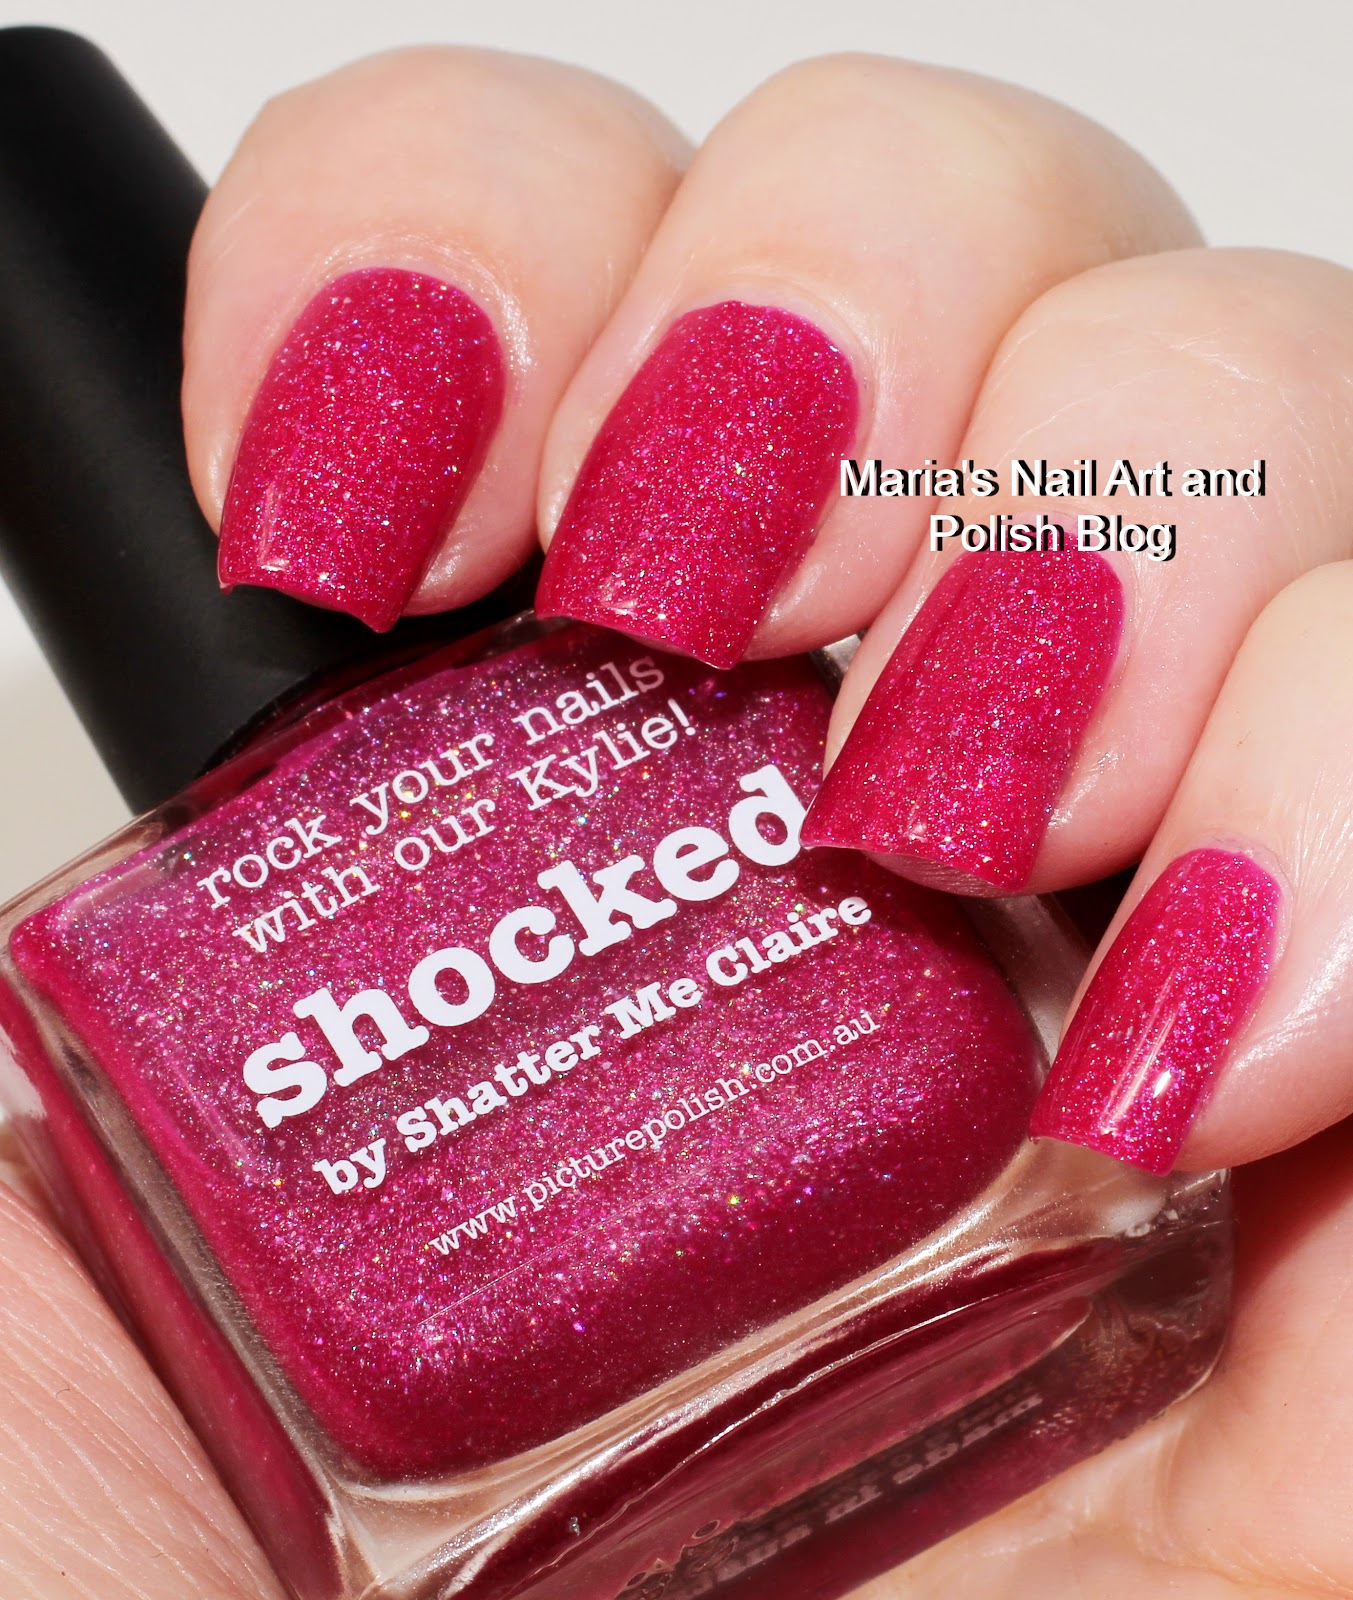 Marias nail art and polish blog picture polish shocked swatches prinsesfo Gallery